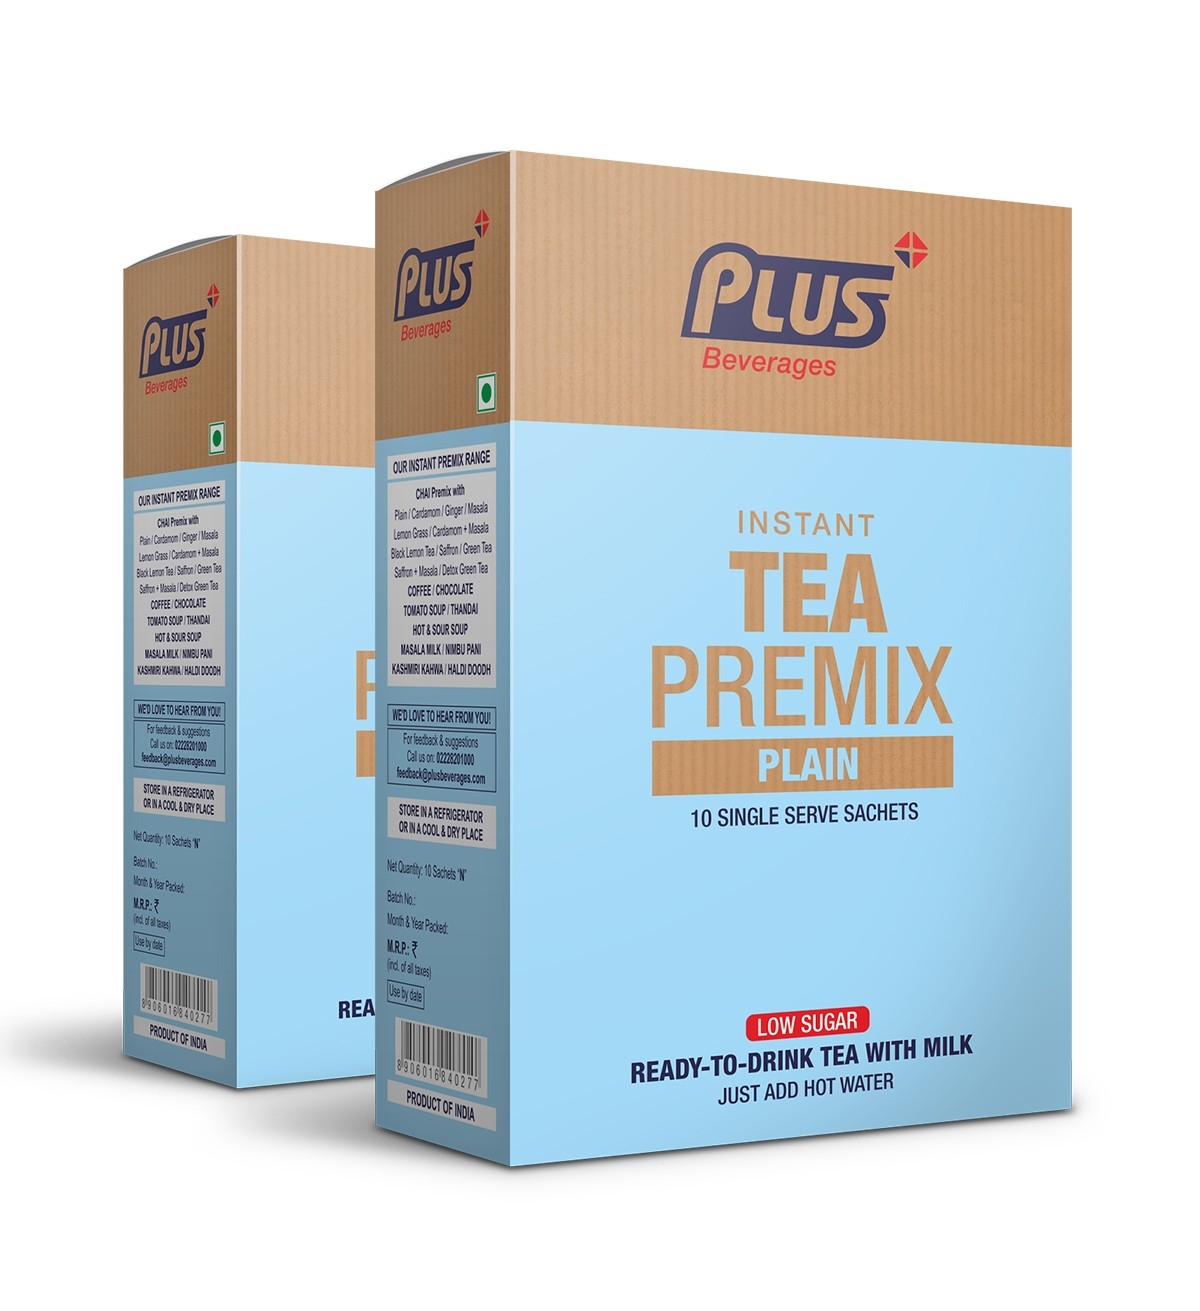 Get Instant Plain Tea with Low Sugar Premix at best price - Free Shipping   Plus Beverages